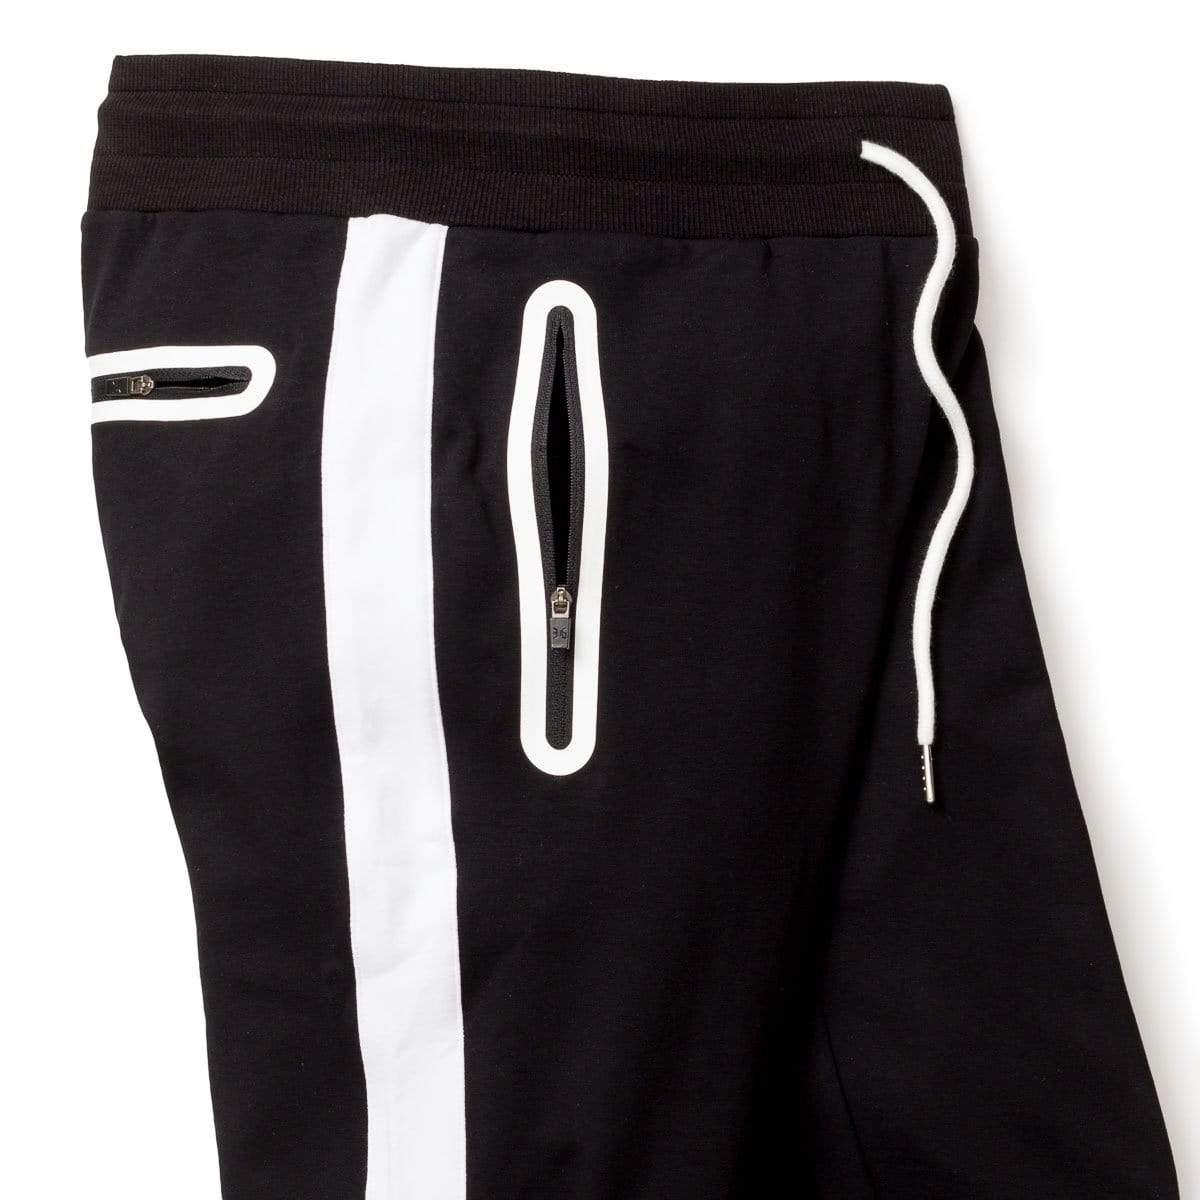 **NEW 2019 JUST ARRIVED**  ALL Sizes Preston Black Jogger Shorts